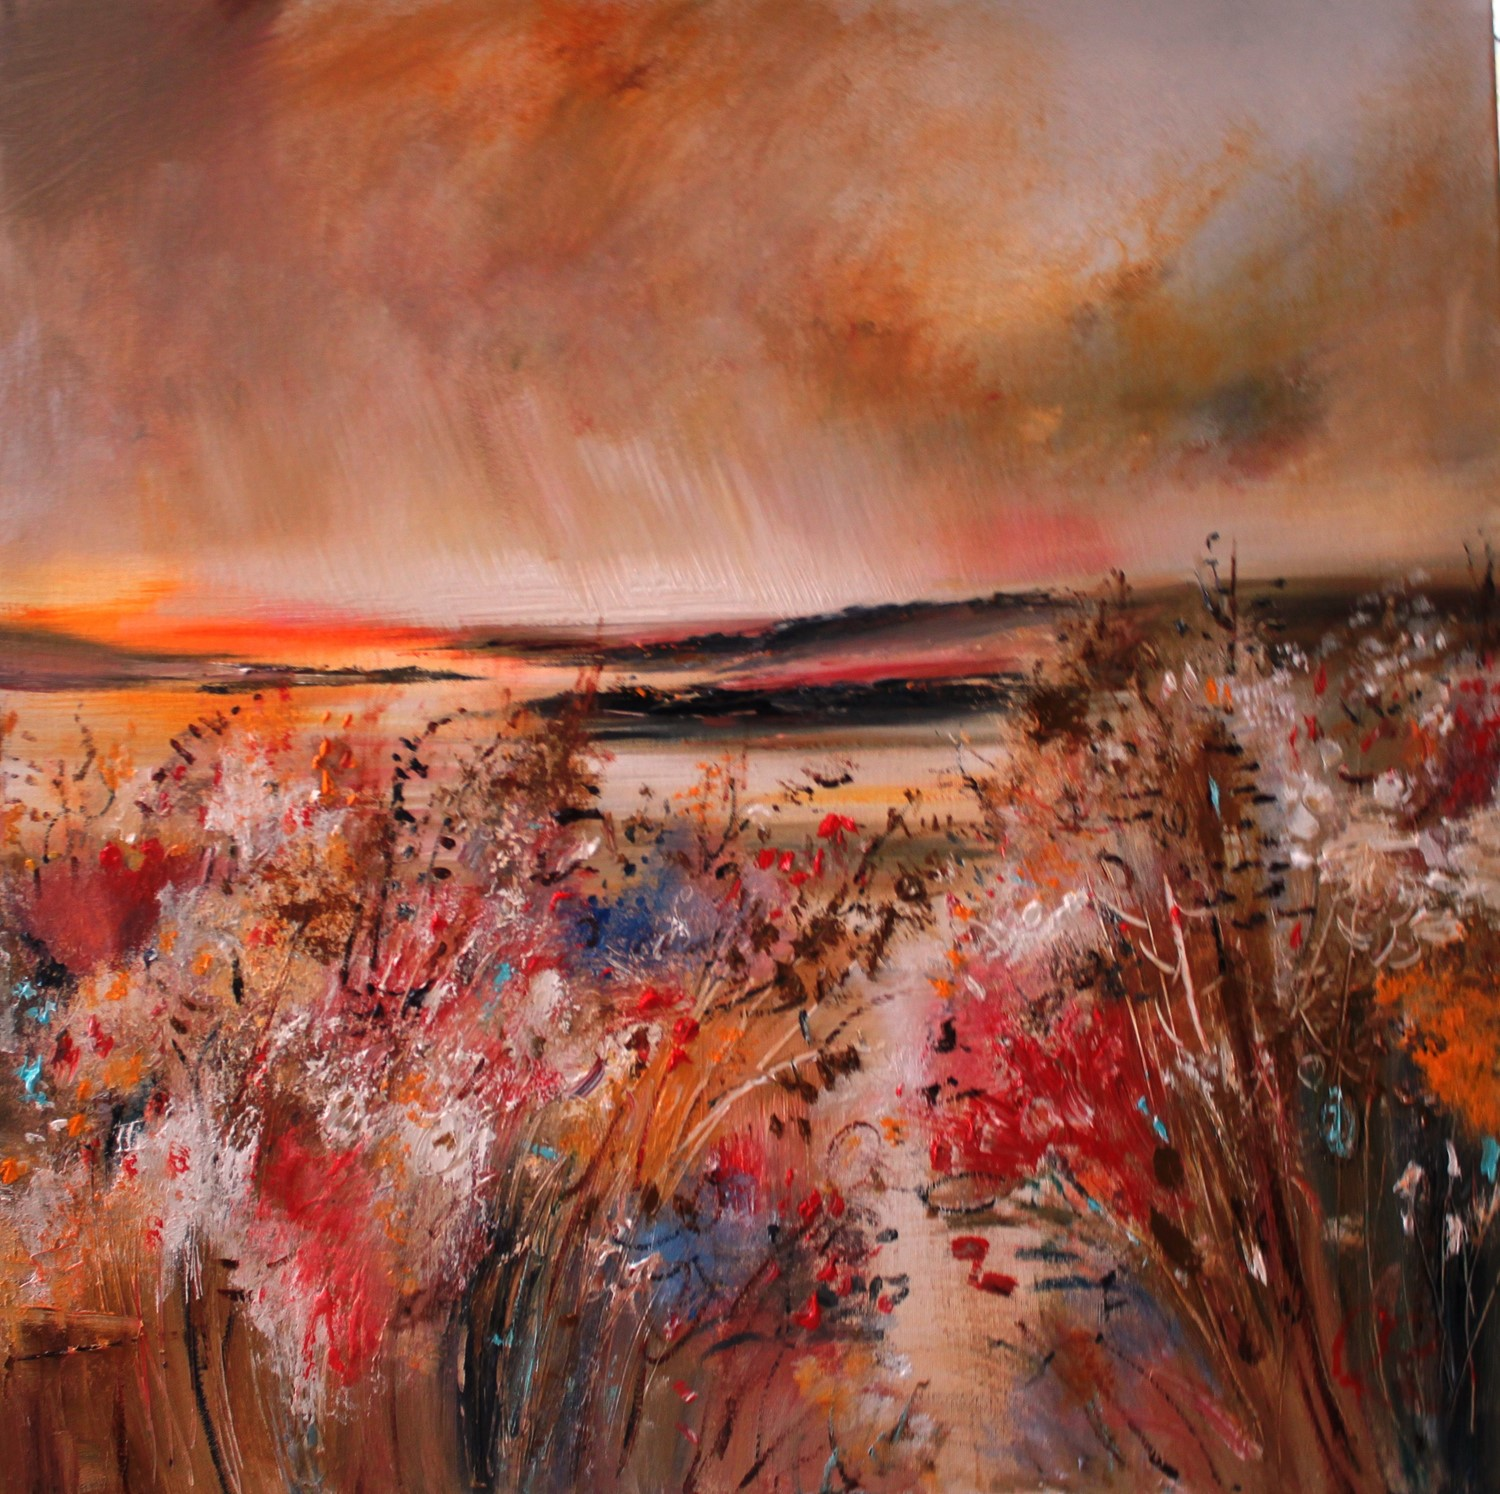 'The Lasting Glow of the Sun' by artist Rosanne Barr